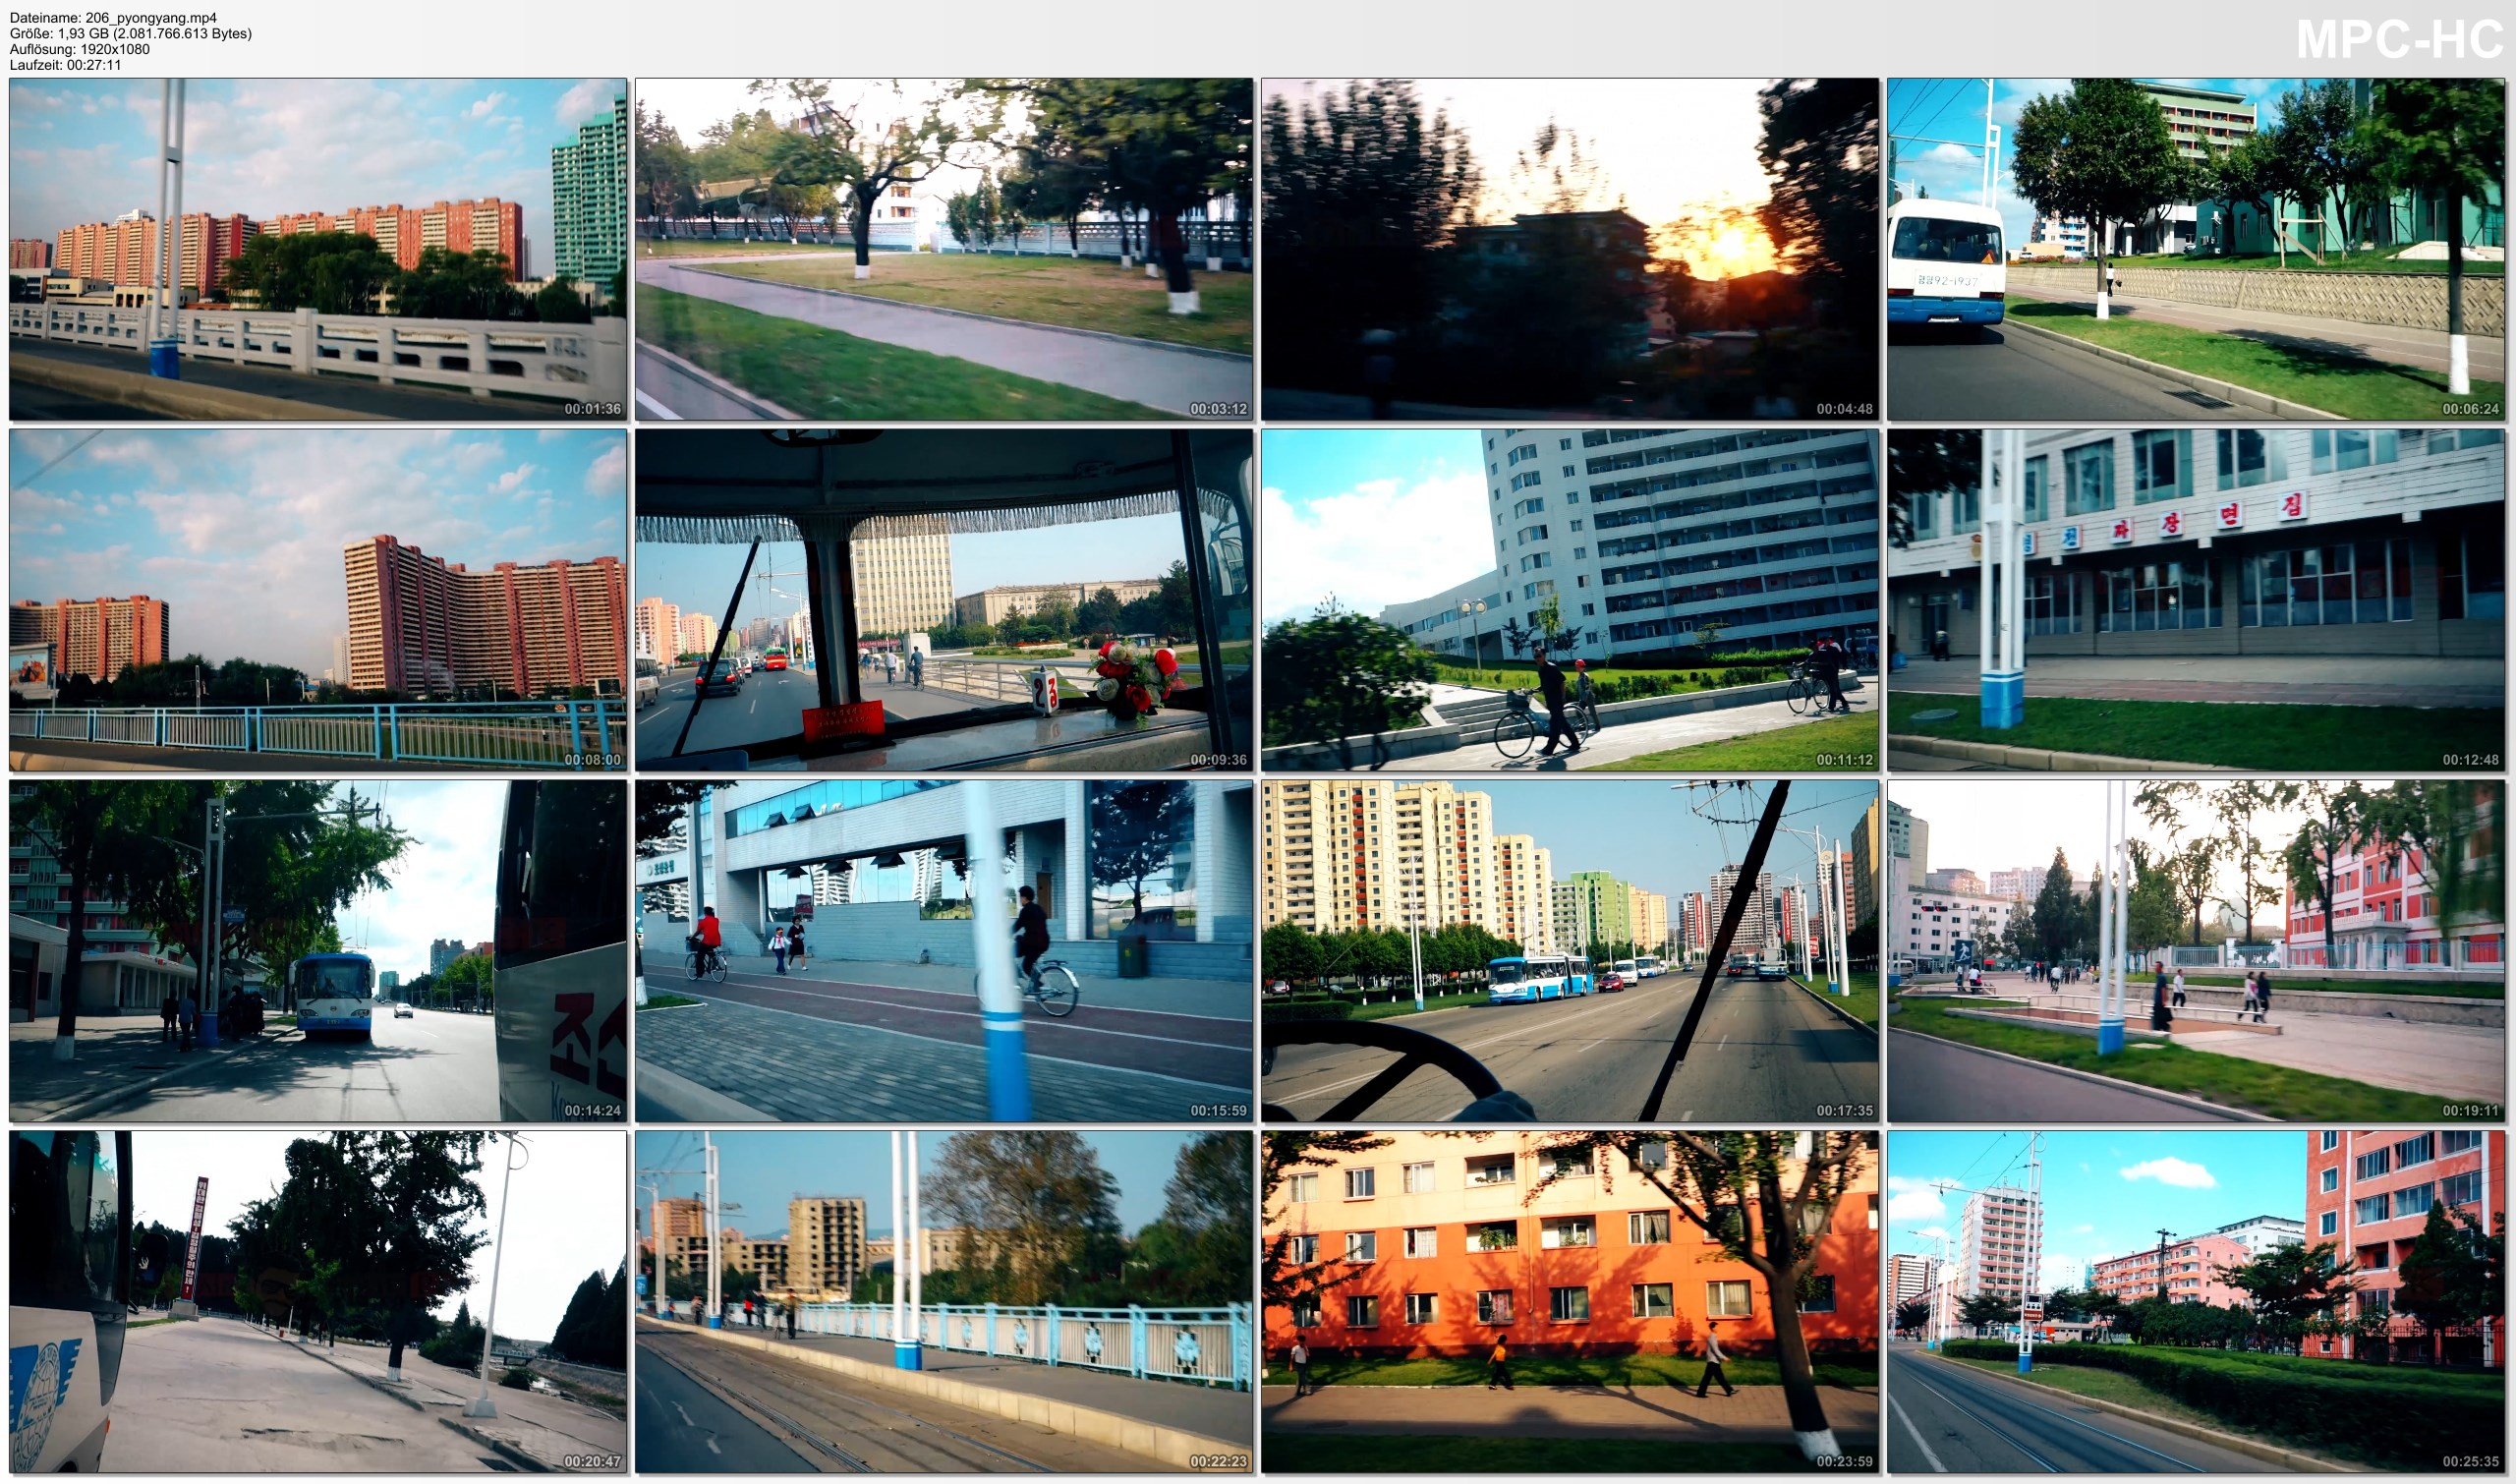 Pictures from Video 【1080p】Footage | Full 27 Minutes BUS TOUR in PYONGYANG (DPRK) 2019 ..:: North Korea *TRAVEL VIDEO*